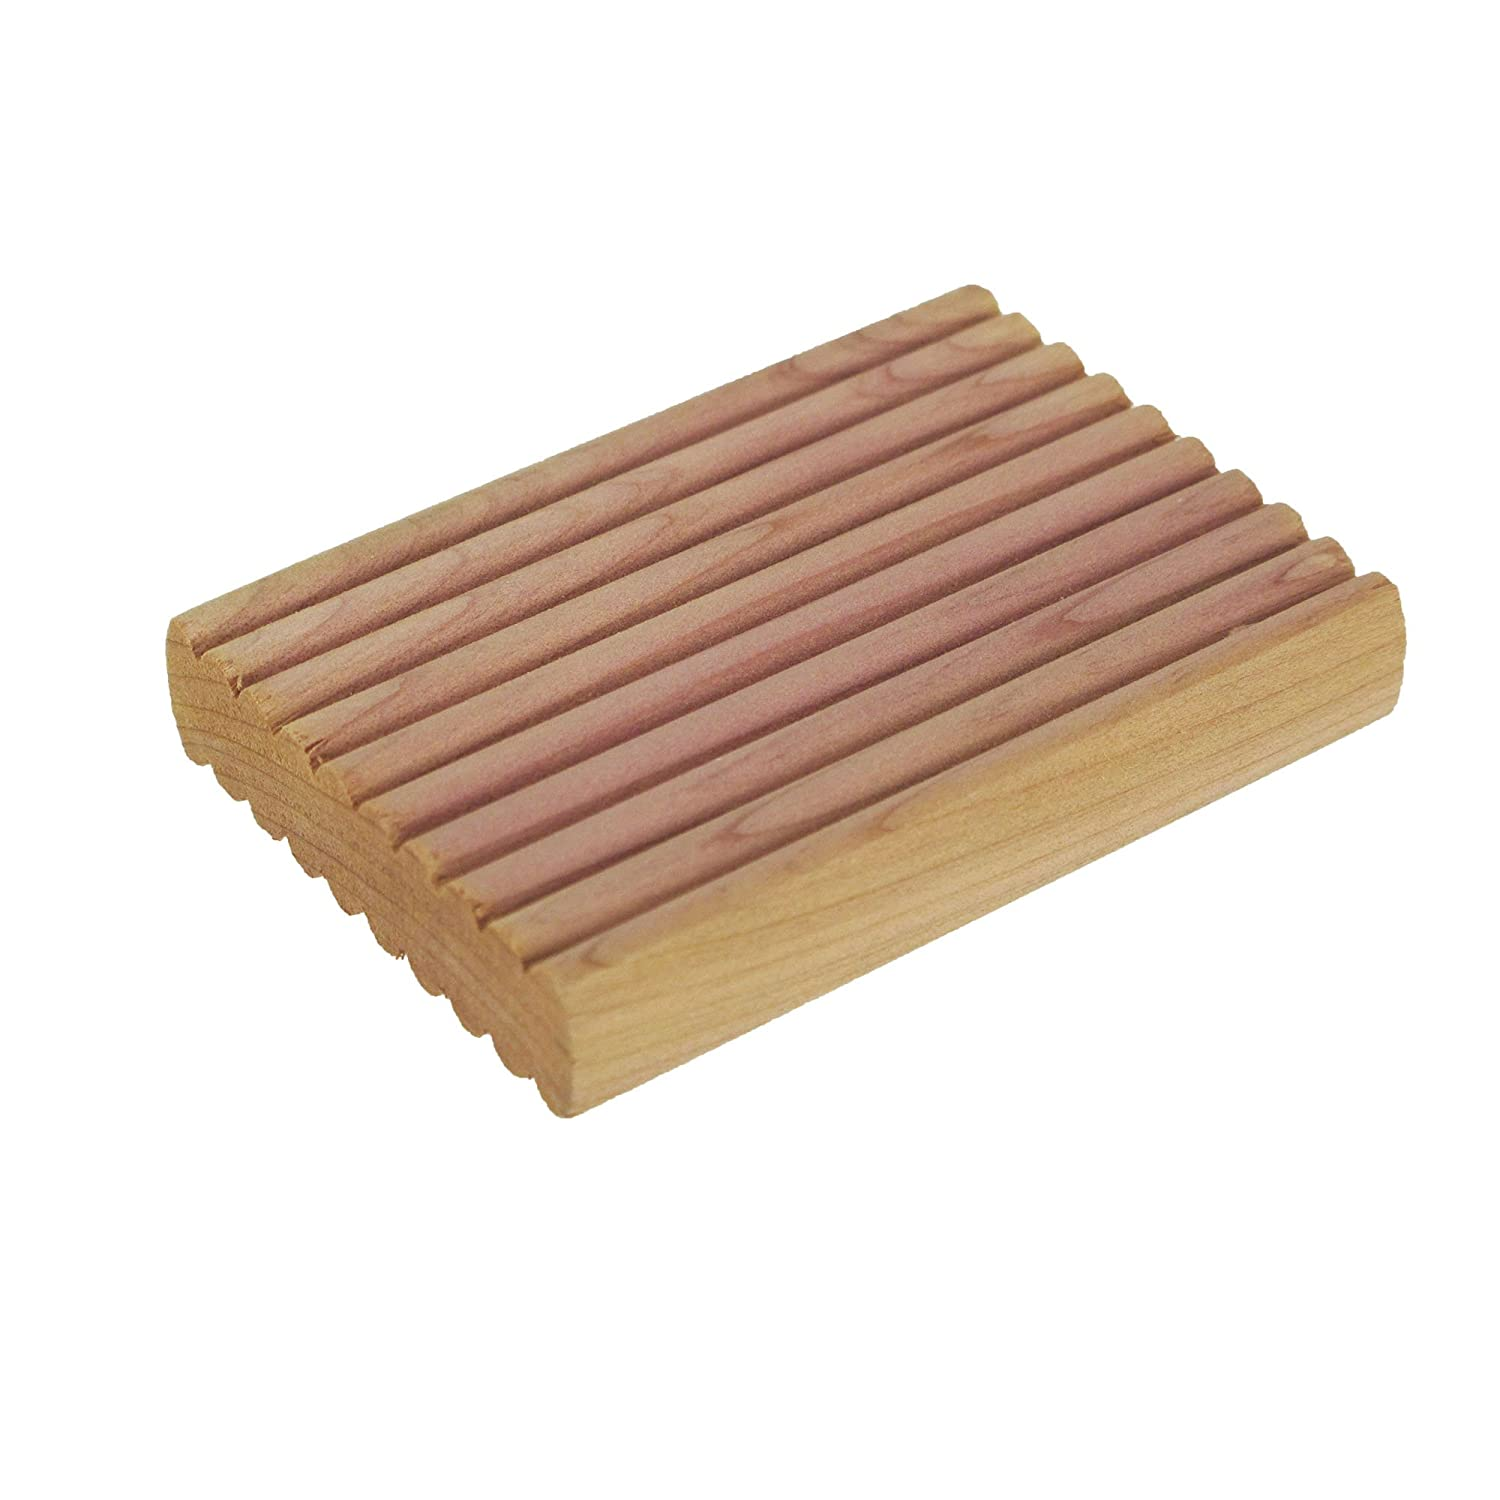 Household Essentials CedarFresh Cedar Blocks with Lavender, 2.75x2x0.5-Inch, 8-Pack 30753-1